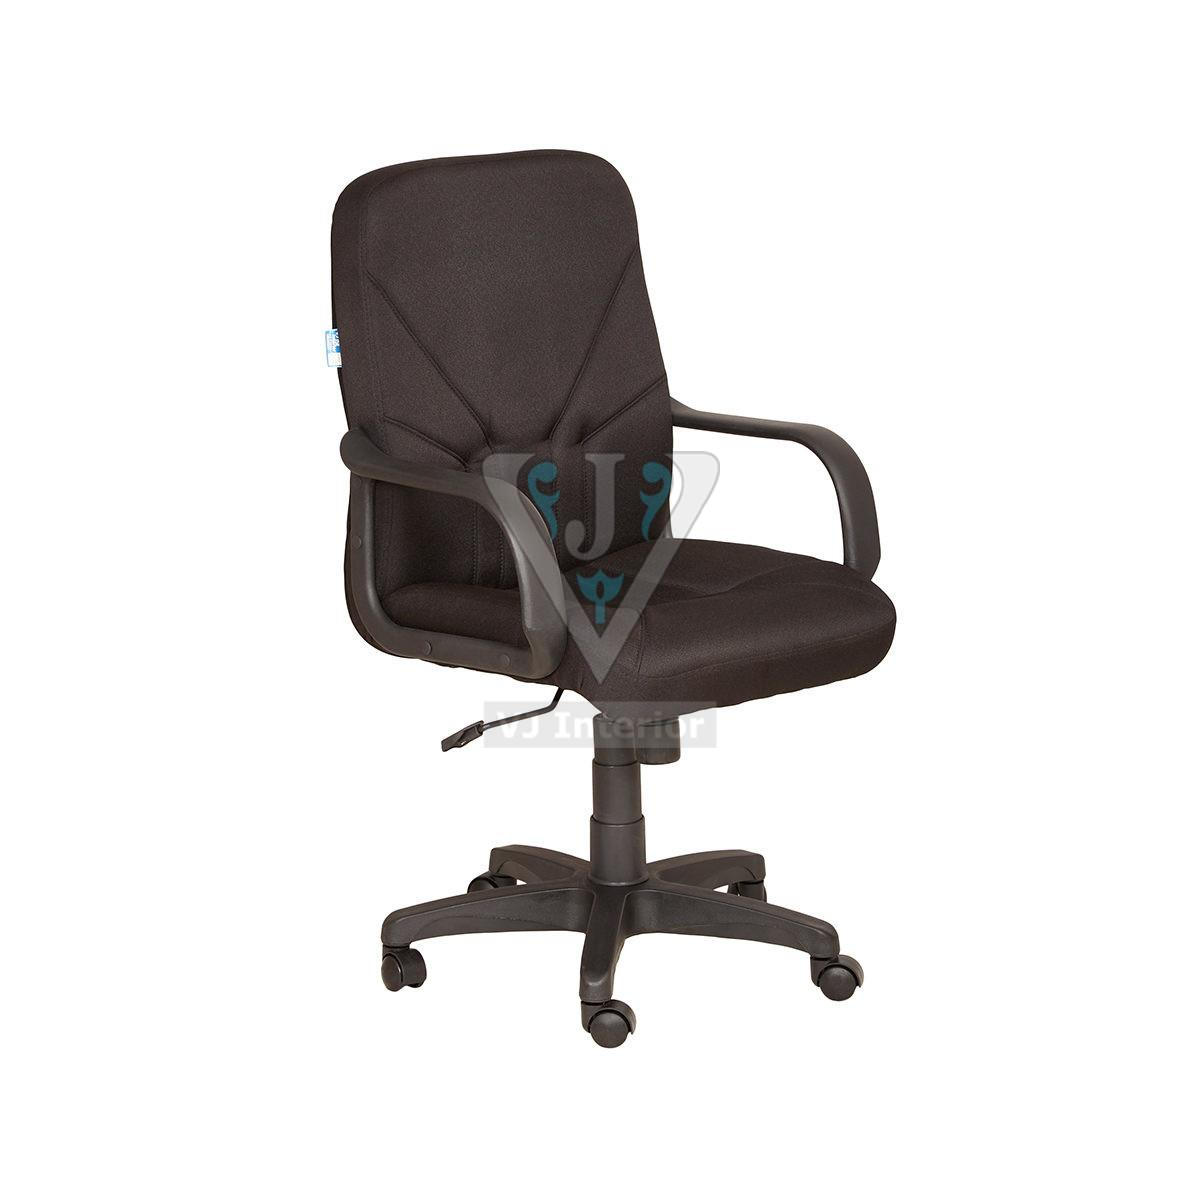 Brown Fabric Revolving Office Chair